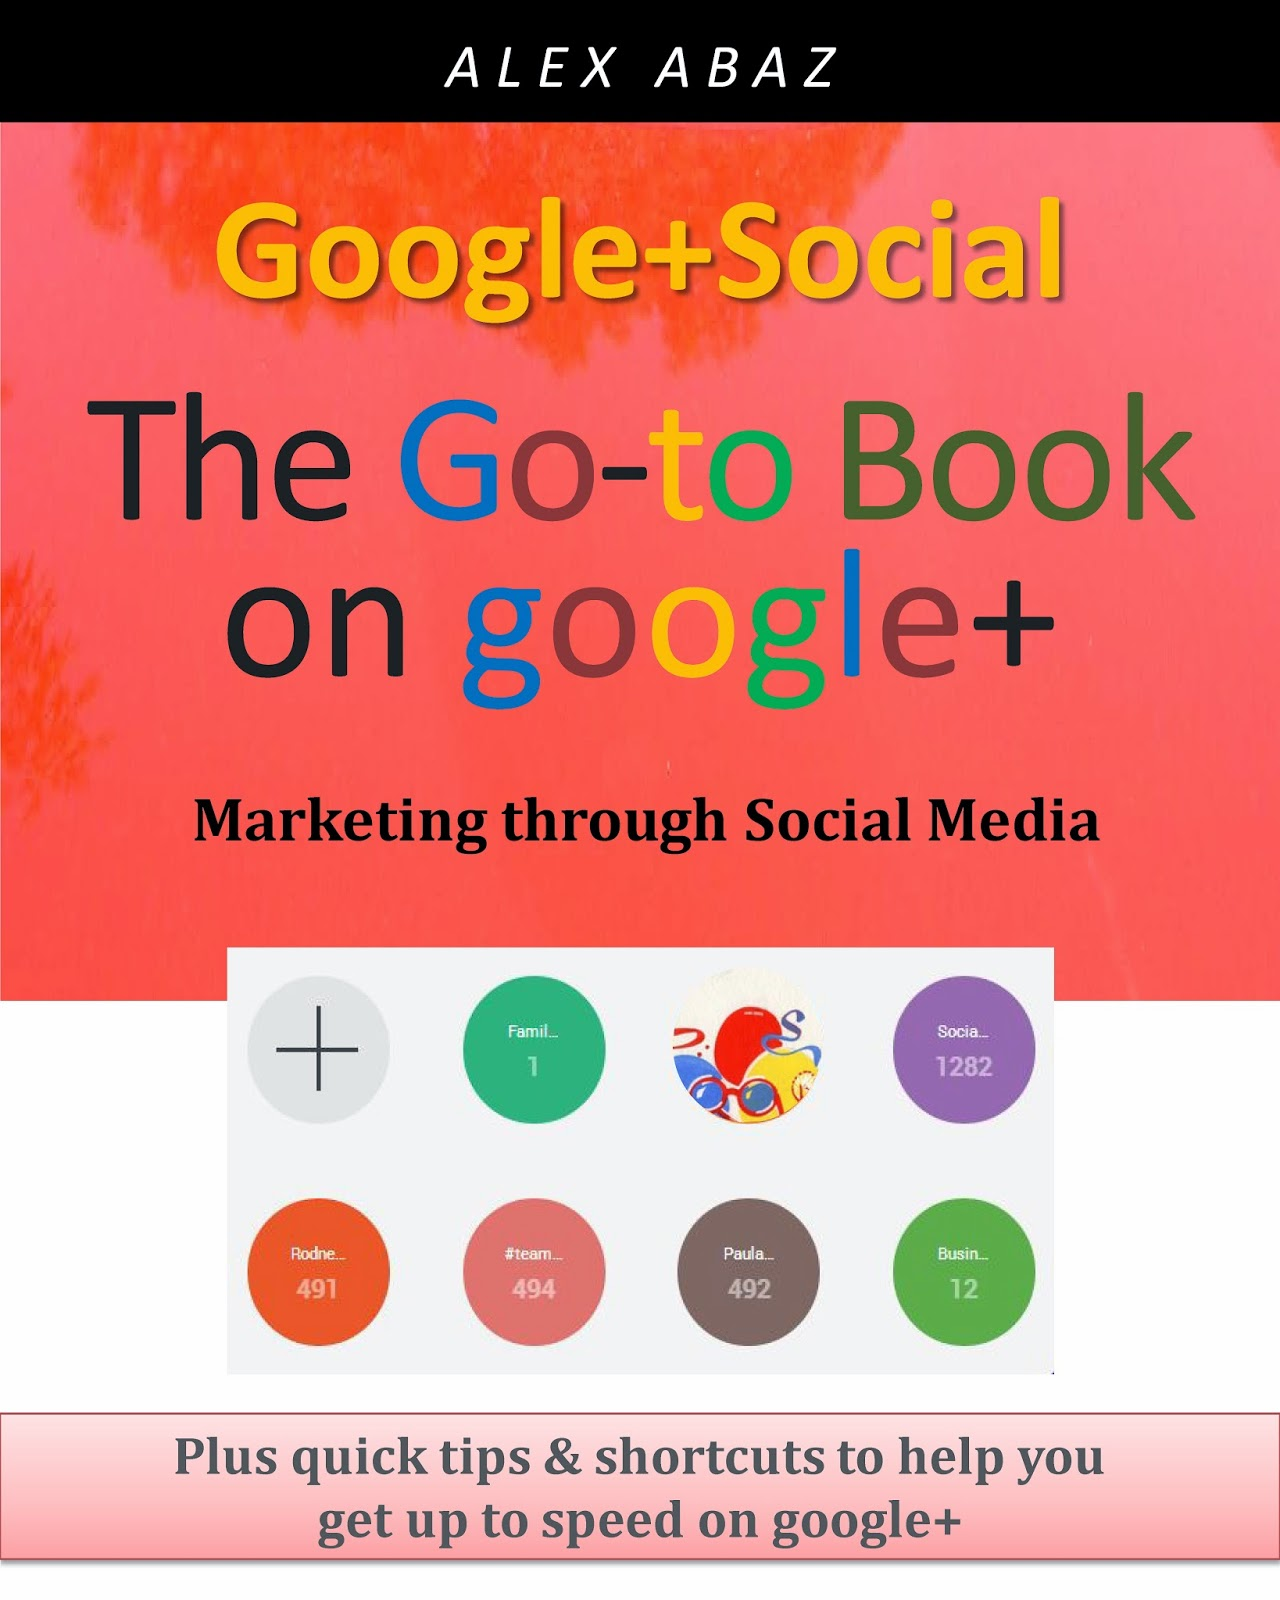 The-Go-To-Book-on-google+:-Marketing-through-Social-Media